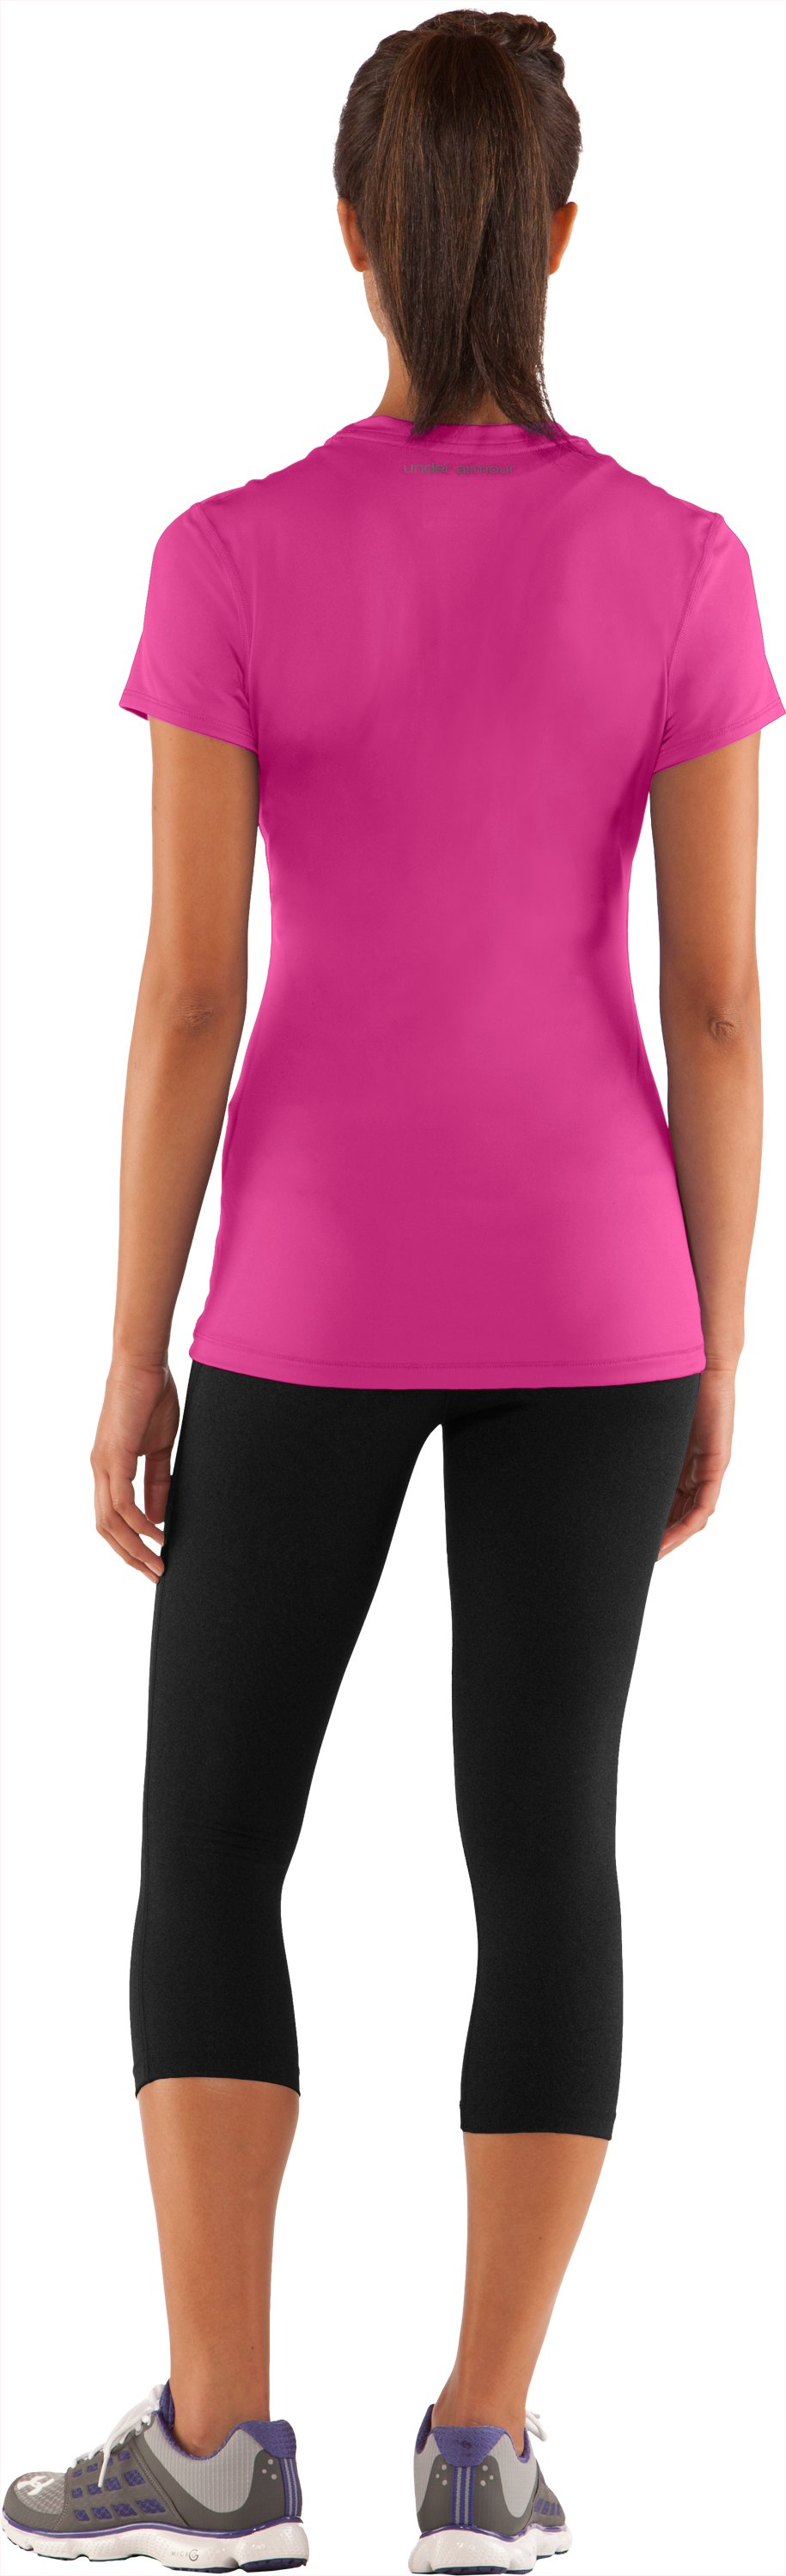 Women's HeatGear® Sonic Short Sleeve, Playful, Back